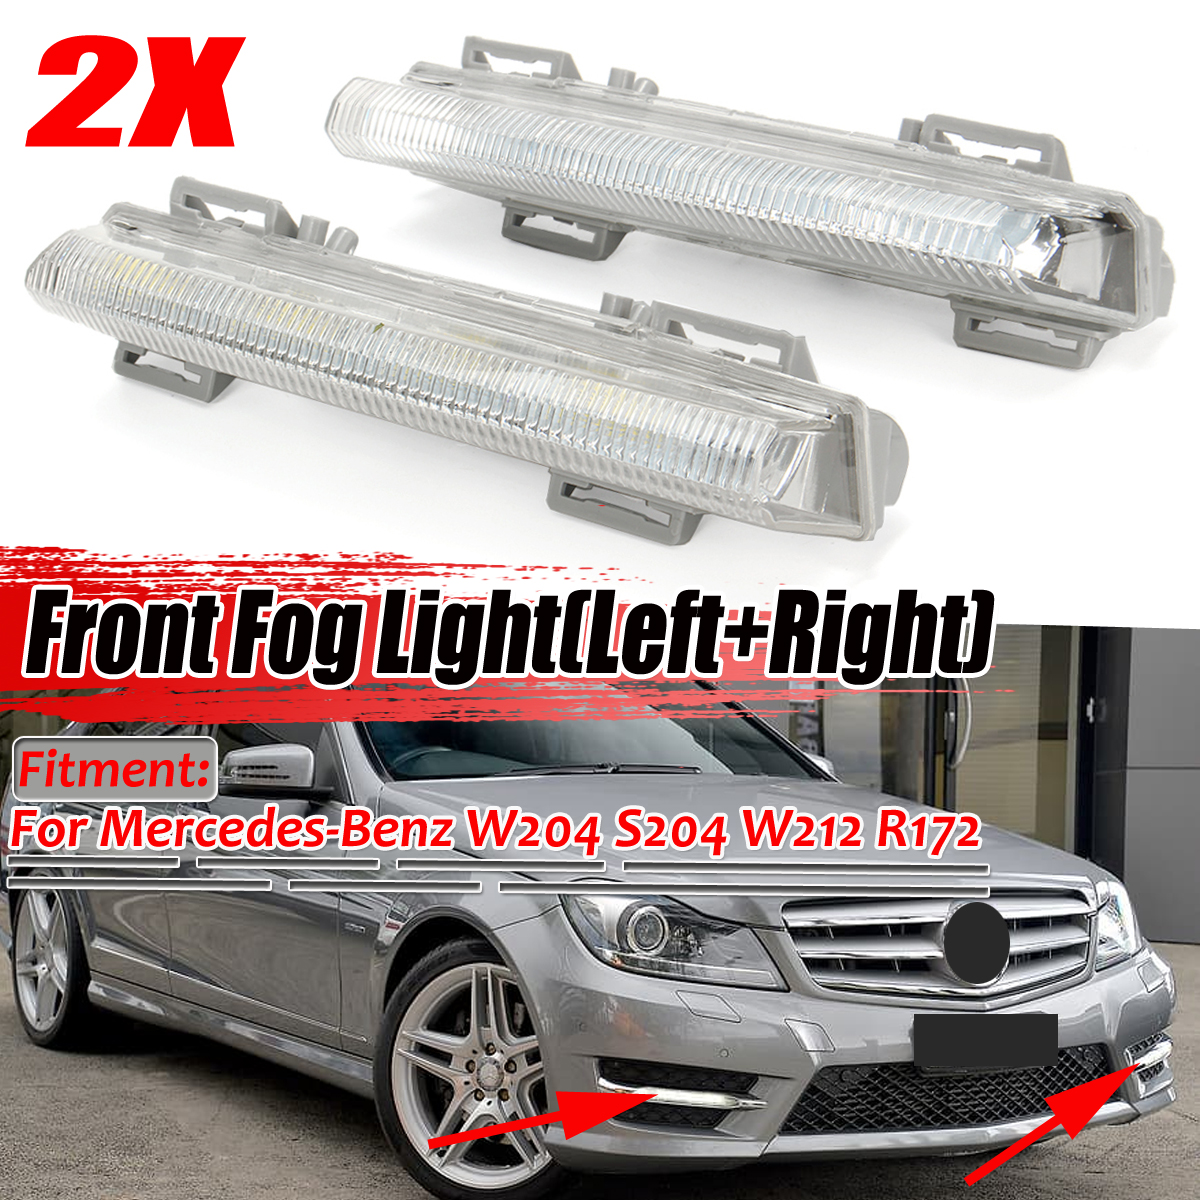 Front DRL Fog Light Right For Mercedes-Benz R172 W204 W212 C250 C280 C350 E350